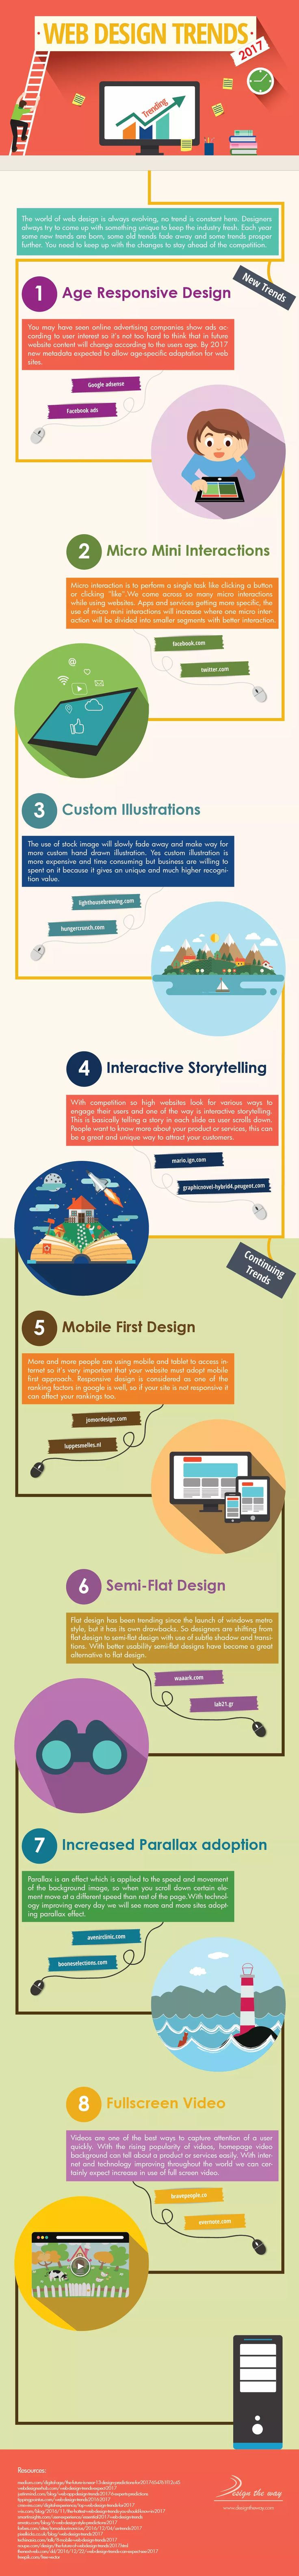 8 #WebDesign Trends Taking Charge in 2017 #Infographic